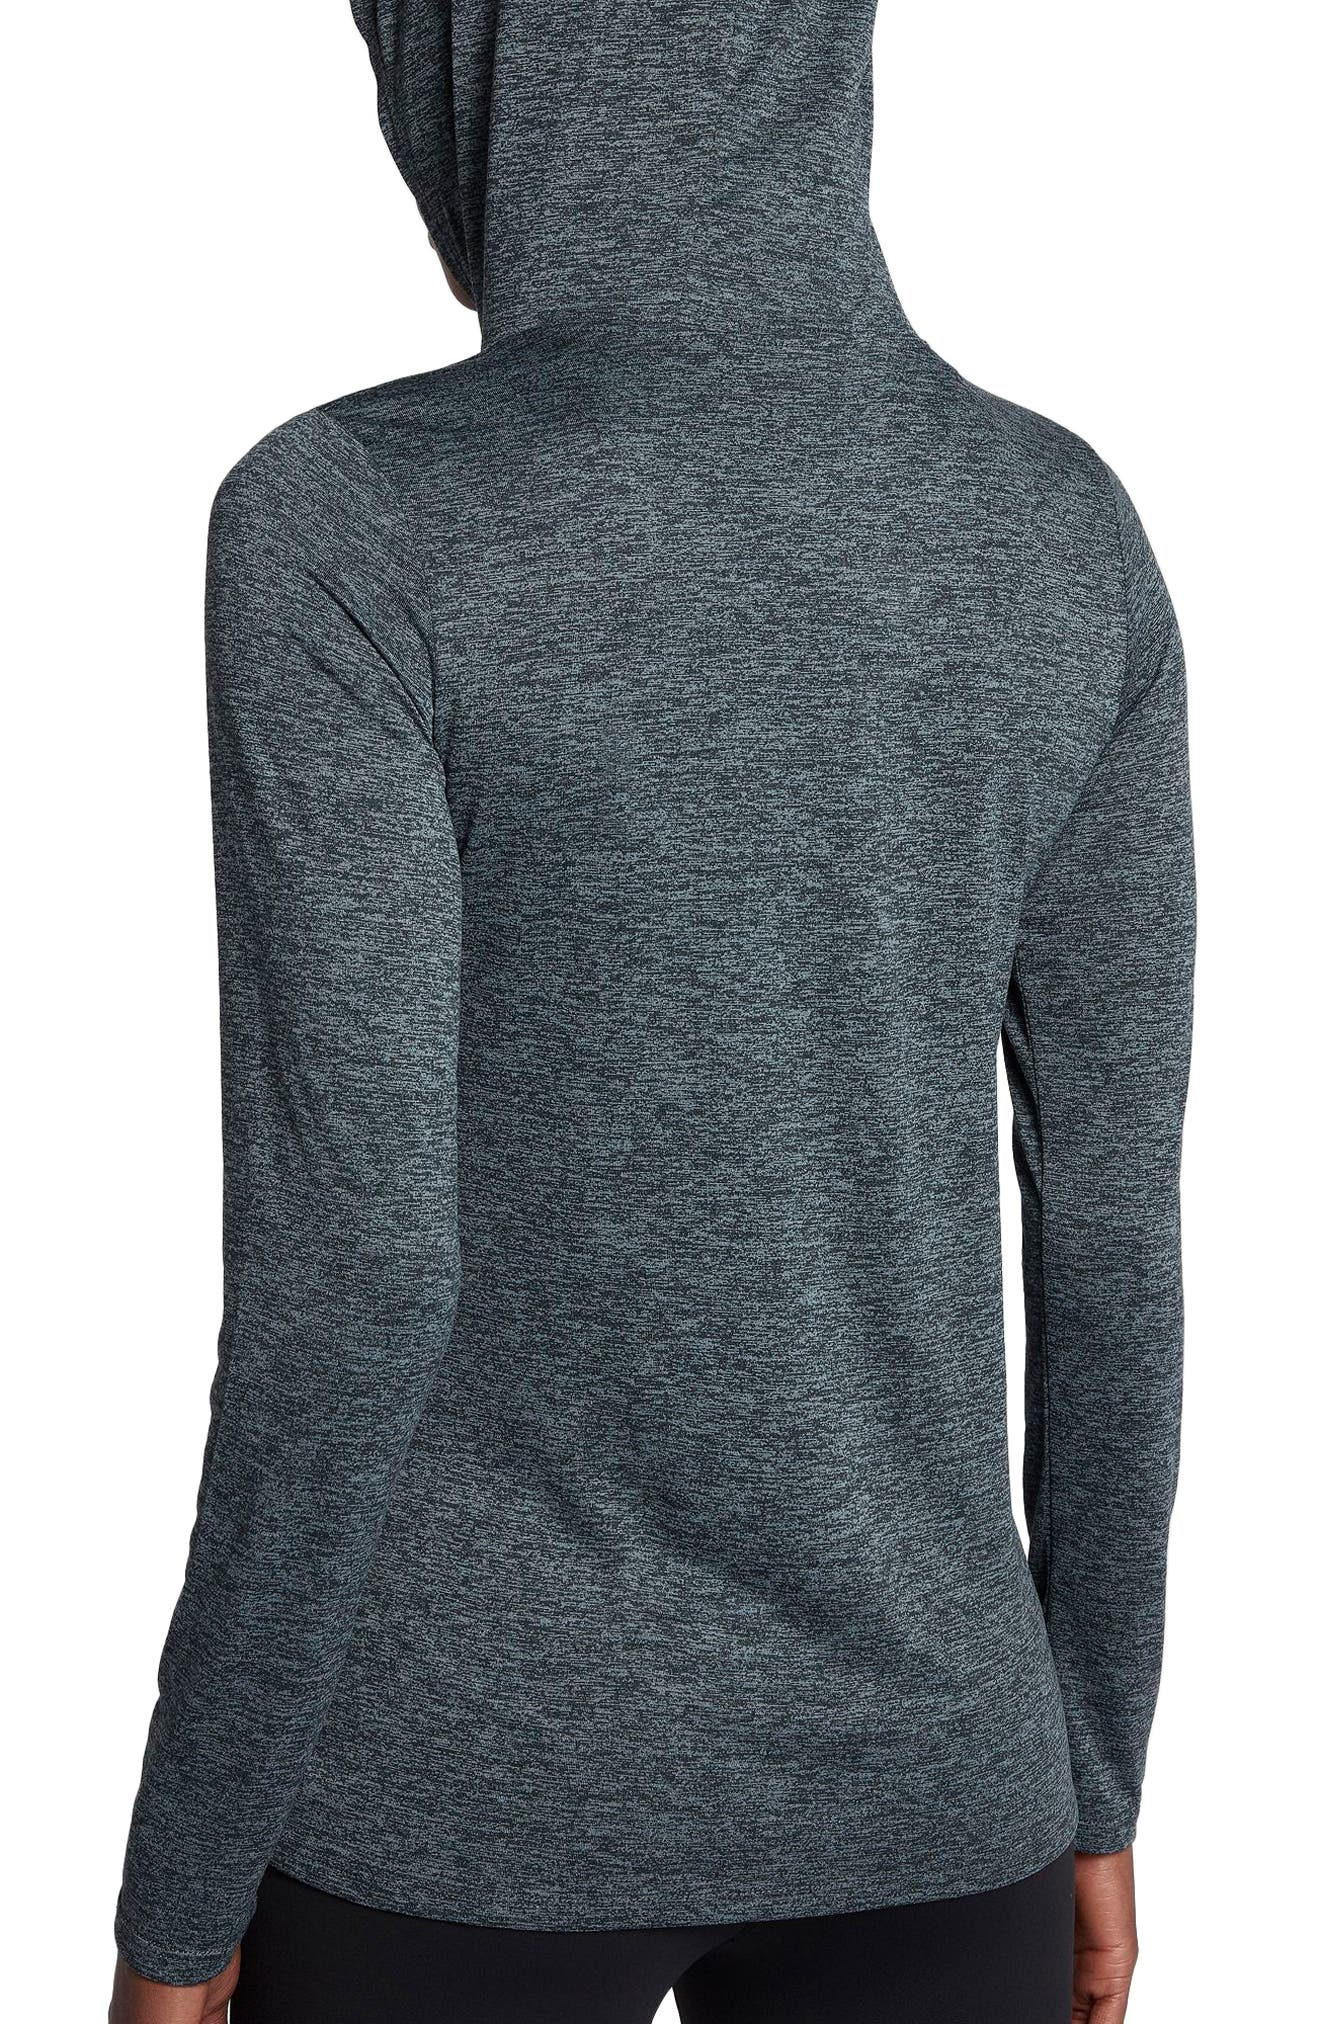 Dry Legend Hooded Training Top,                             Alternate thumbnail 2, color,                             Black/ Cool Grey/ White